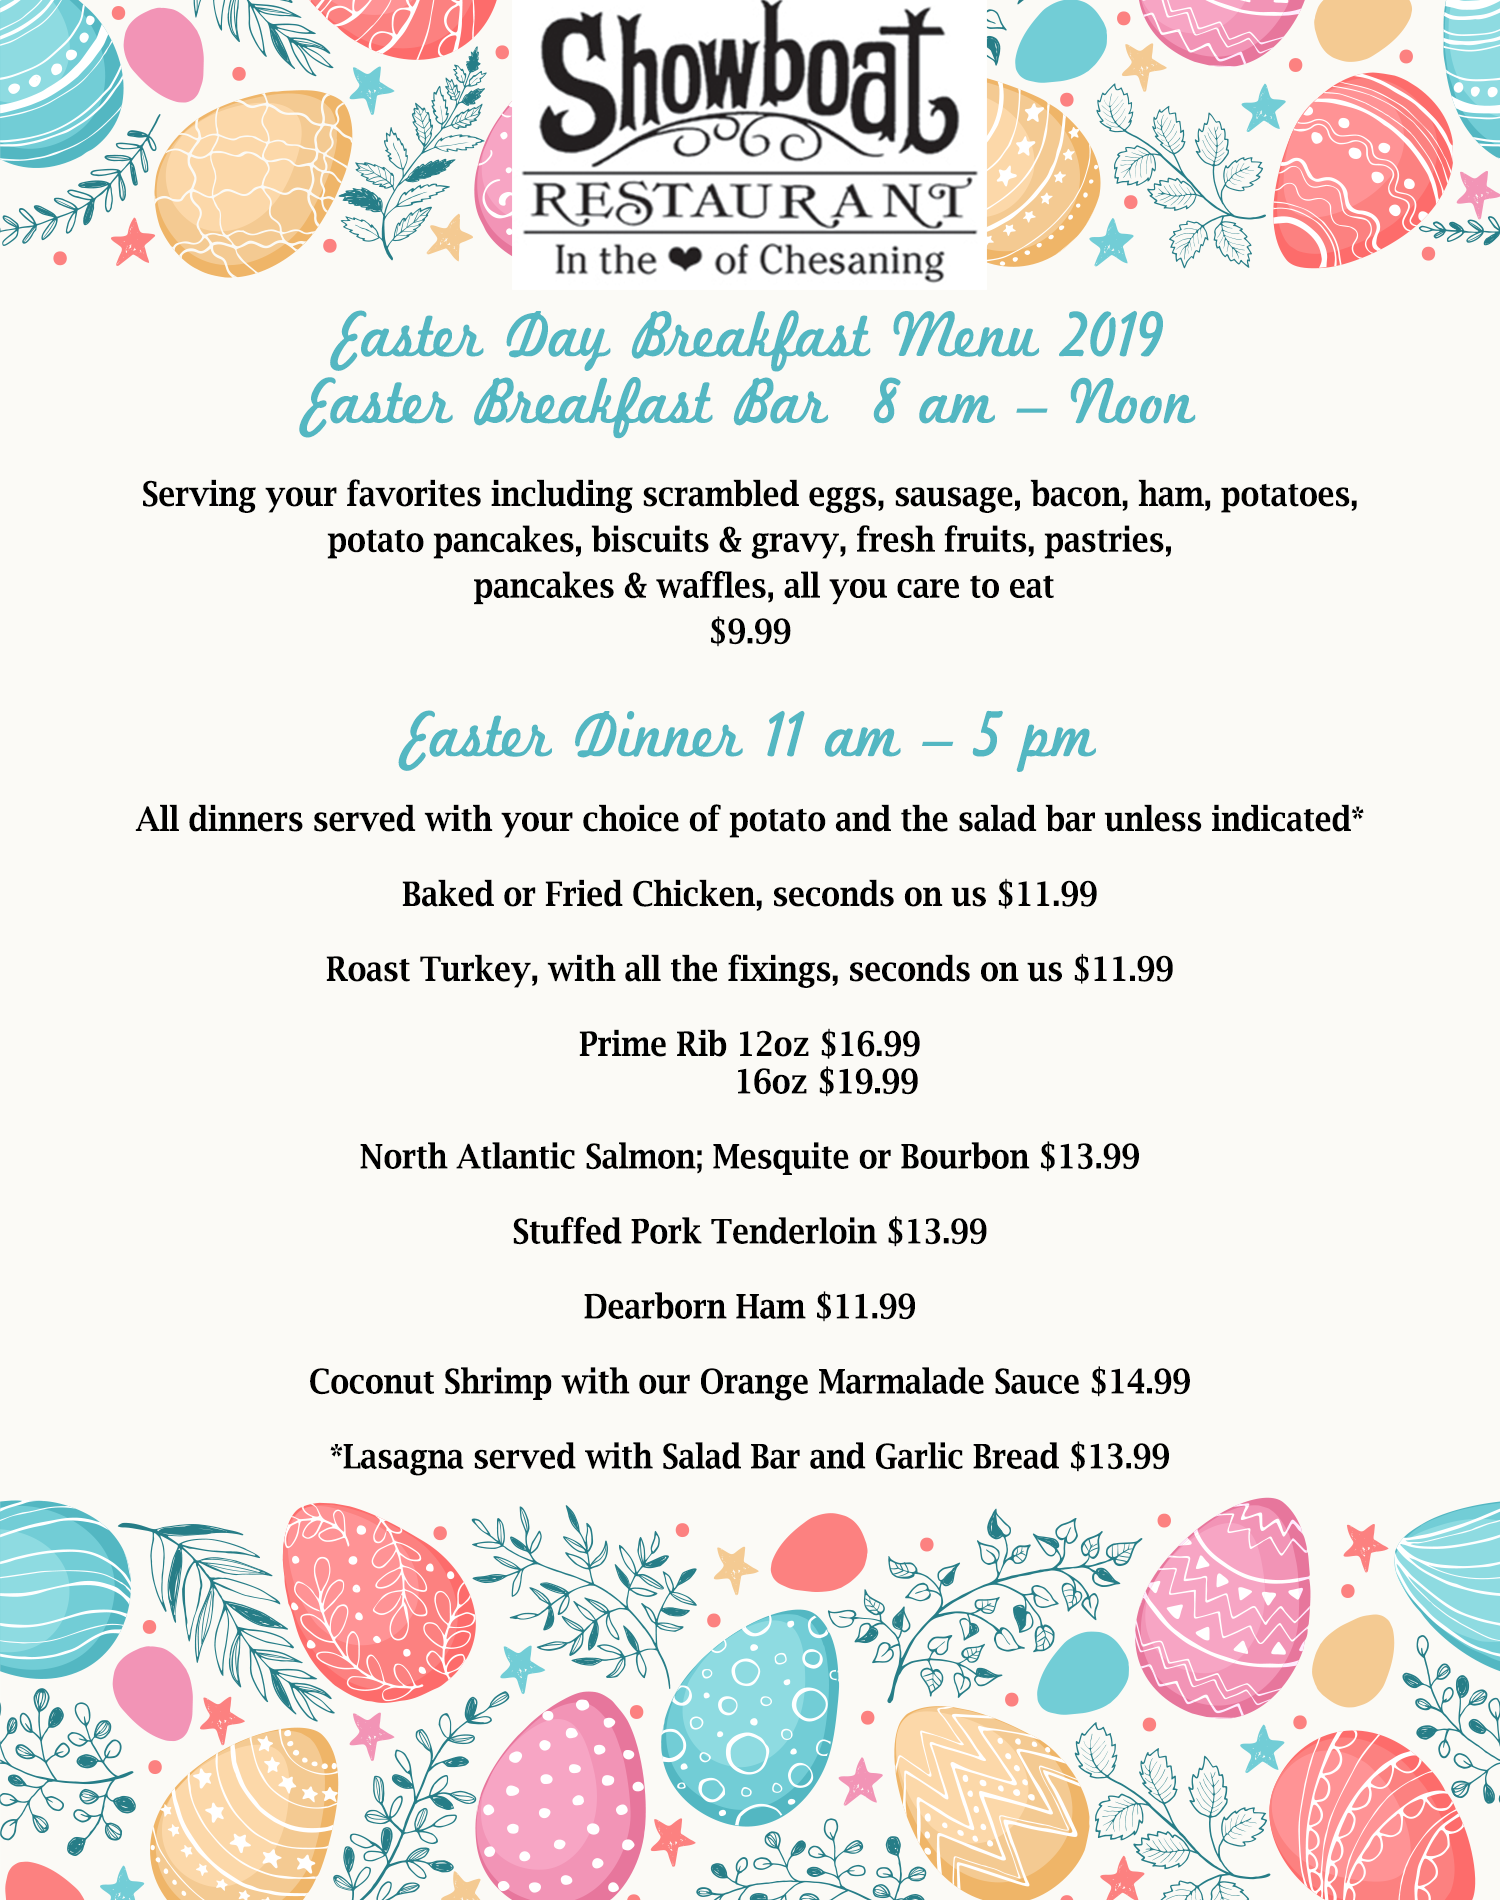 SHOWBOAT RESTAURANT EASTER DAY BREAKFAST MENU 2019  EASTER BREAKFAST BAR  8AM – NOON  Serving your favorites including scrambled eggs, sausage, bacon, ham, potatoes, potato pancakes, biscuits & gravy, fresh fruits, pastries, pancakes & waffles, all you care to eat			9.99 Easter Dinner	11AM – 5PM ALL DINNERS SERVED WITH YOUR CHOICE OF POTATO AND THE SALAD BAR UNLESS INDICATED * Baked or Fried Chicken, seconds on us			$11.99 Roast Turkey, with all the fixings, seconds on us		$11.99 Prime Rib						12oz $16.99 							16oz $19.99 North Atlantic Salmon; Mesquite or Bourbon		$13.99 Stuffed Pork Tenderloin					$13.99 Dearborn Ham 						$11.99 Coconut Shrimp	 with our orange marmalade sauce	$14.99 *Lasagna served with Salad Bar and Garlic Bread	$13.99